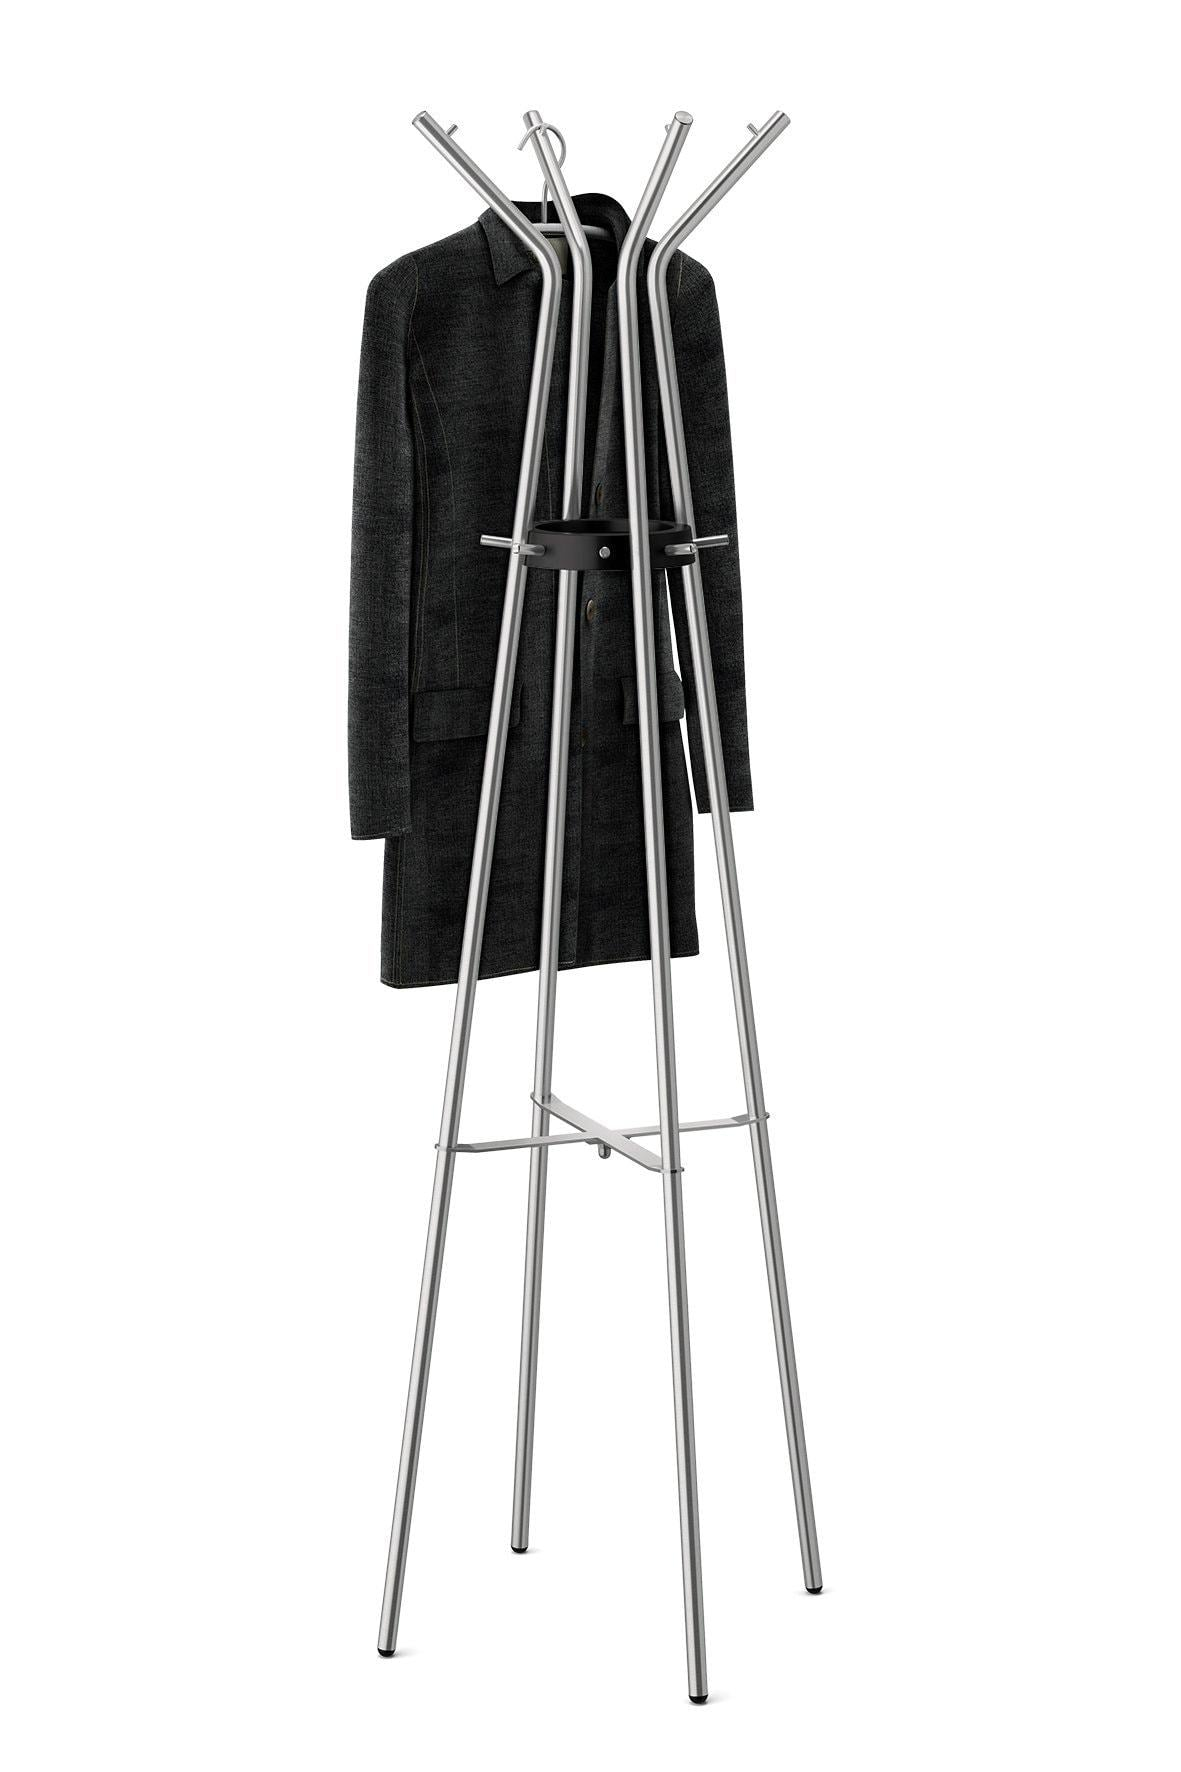 Buy now zack stainless steel teros matt finished coat stand 21 26 x 68 90 silver metallic